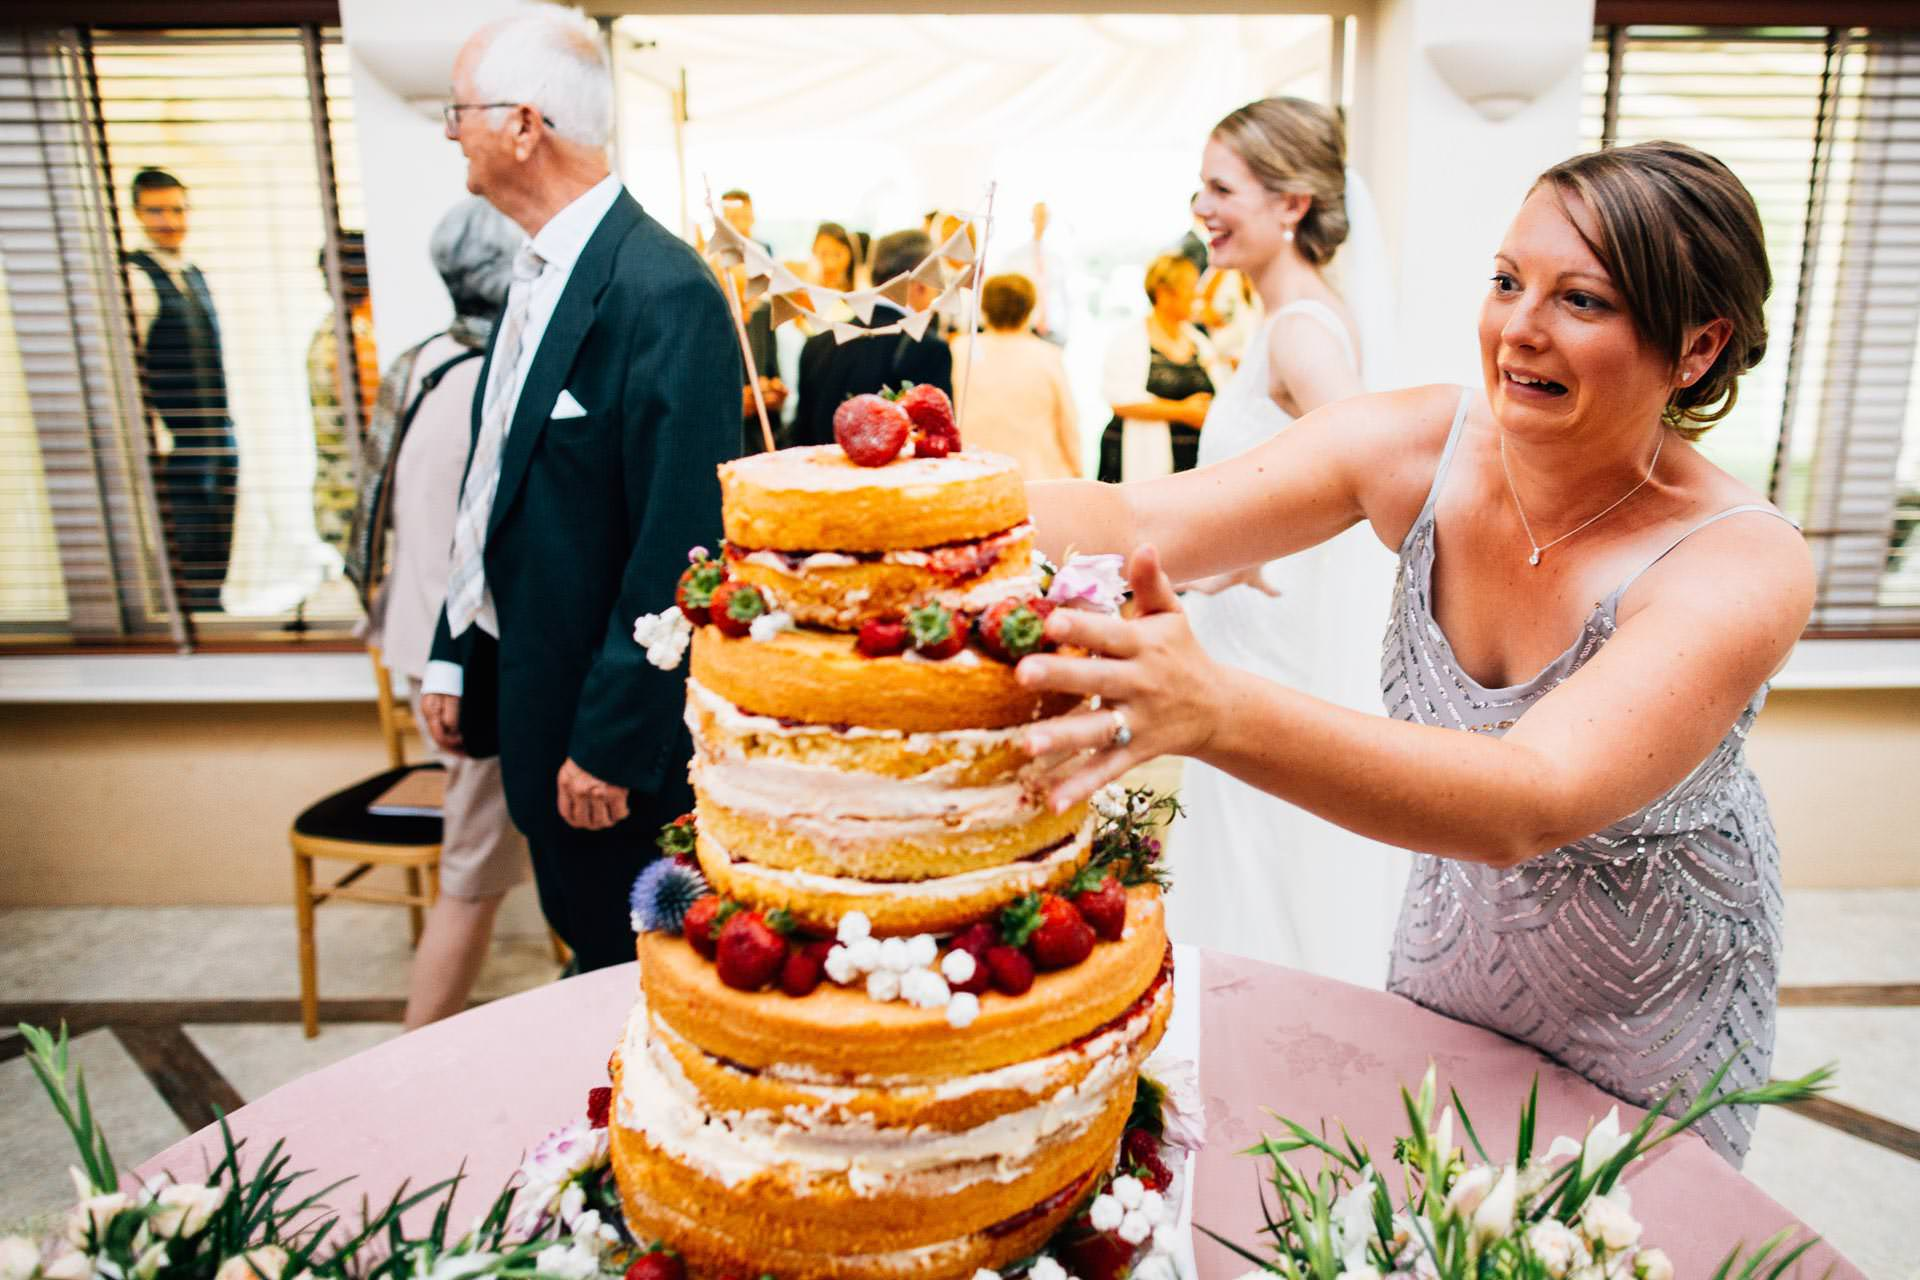 Best wedding photography 2016 - bridesmaid stopping the cake from falling over